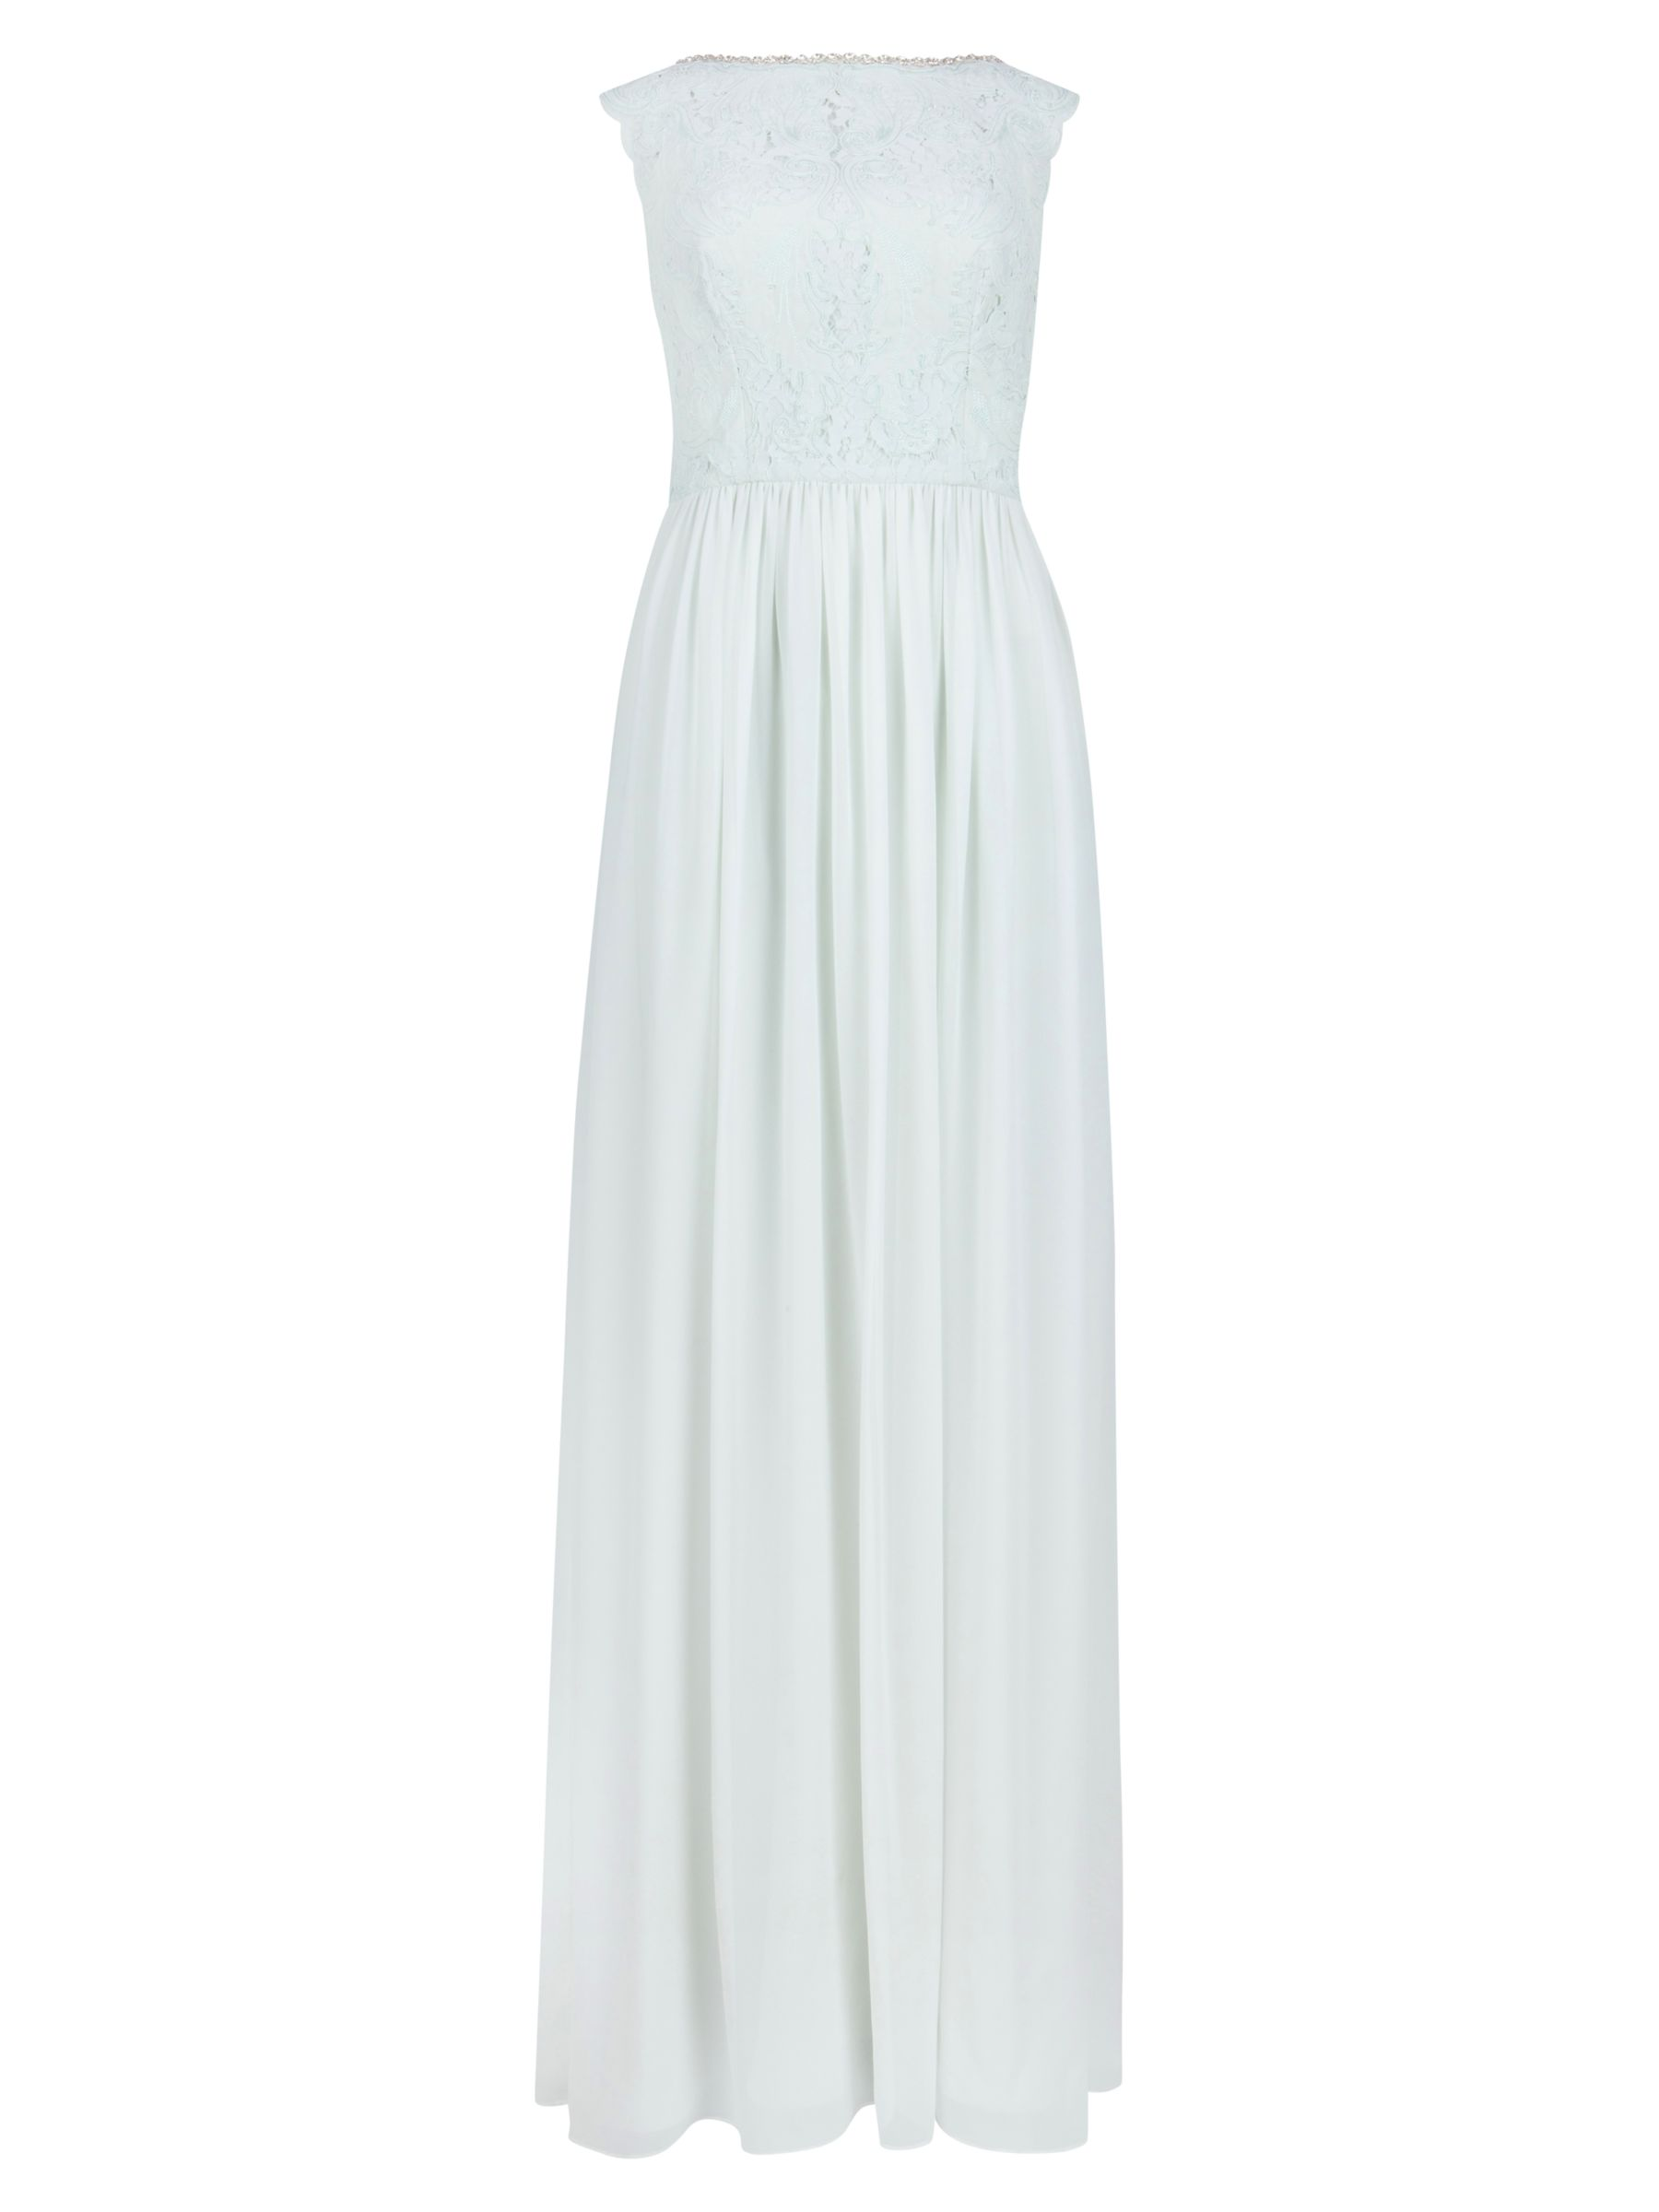 ted baker lace bodice full length dress mint, ted, baker, lace, bodice, full, dress, mint, ted baker, 3|5|1|4|2|0, edition magazine, ss15 trend pastels, women, womens dresses, gifts, wedding, wedding clothing, adult bridesmaids, fashion magazine, womenswear, men, brands l-z, 1873402